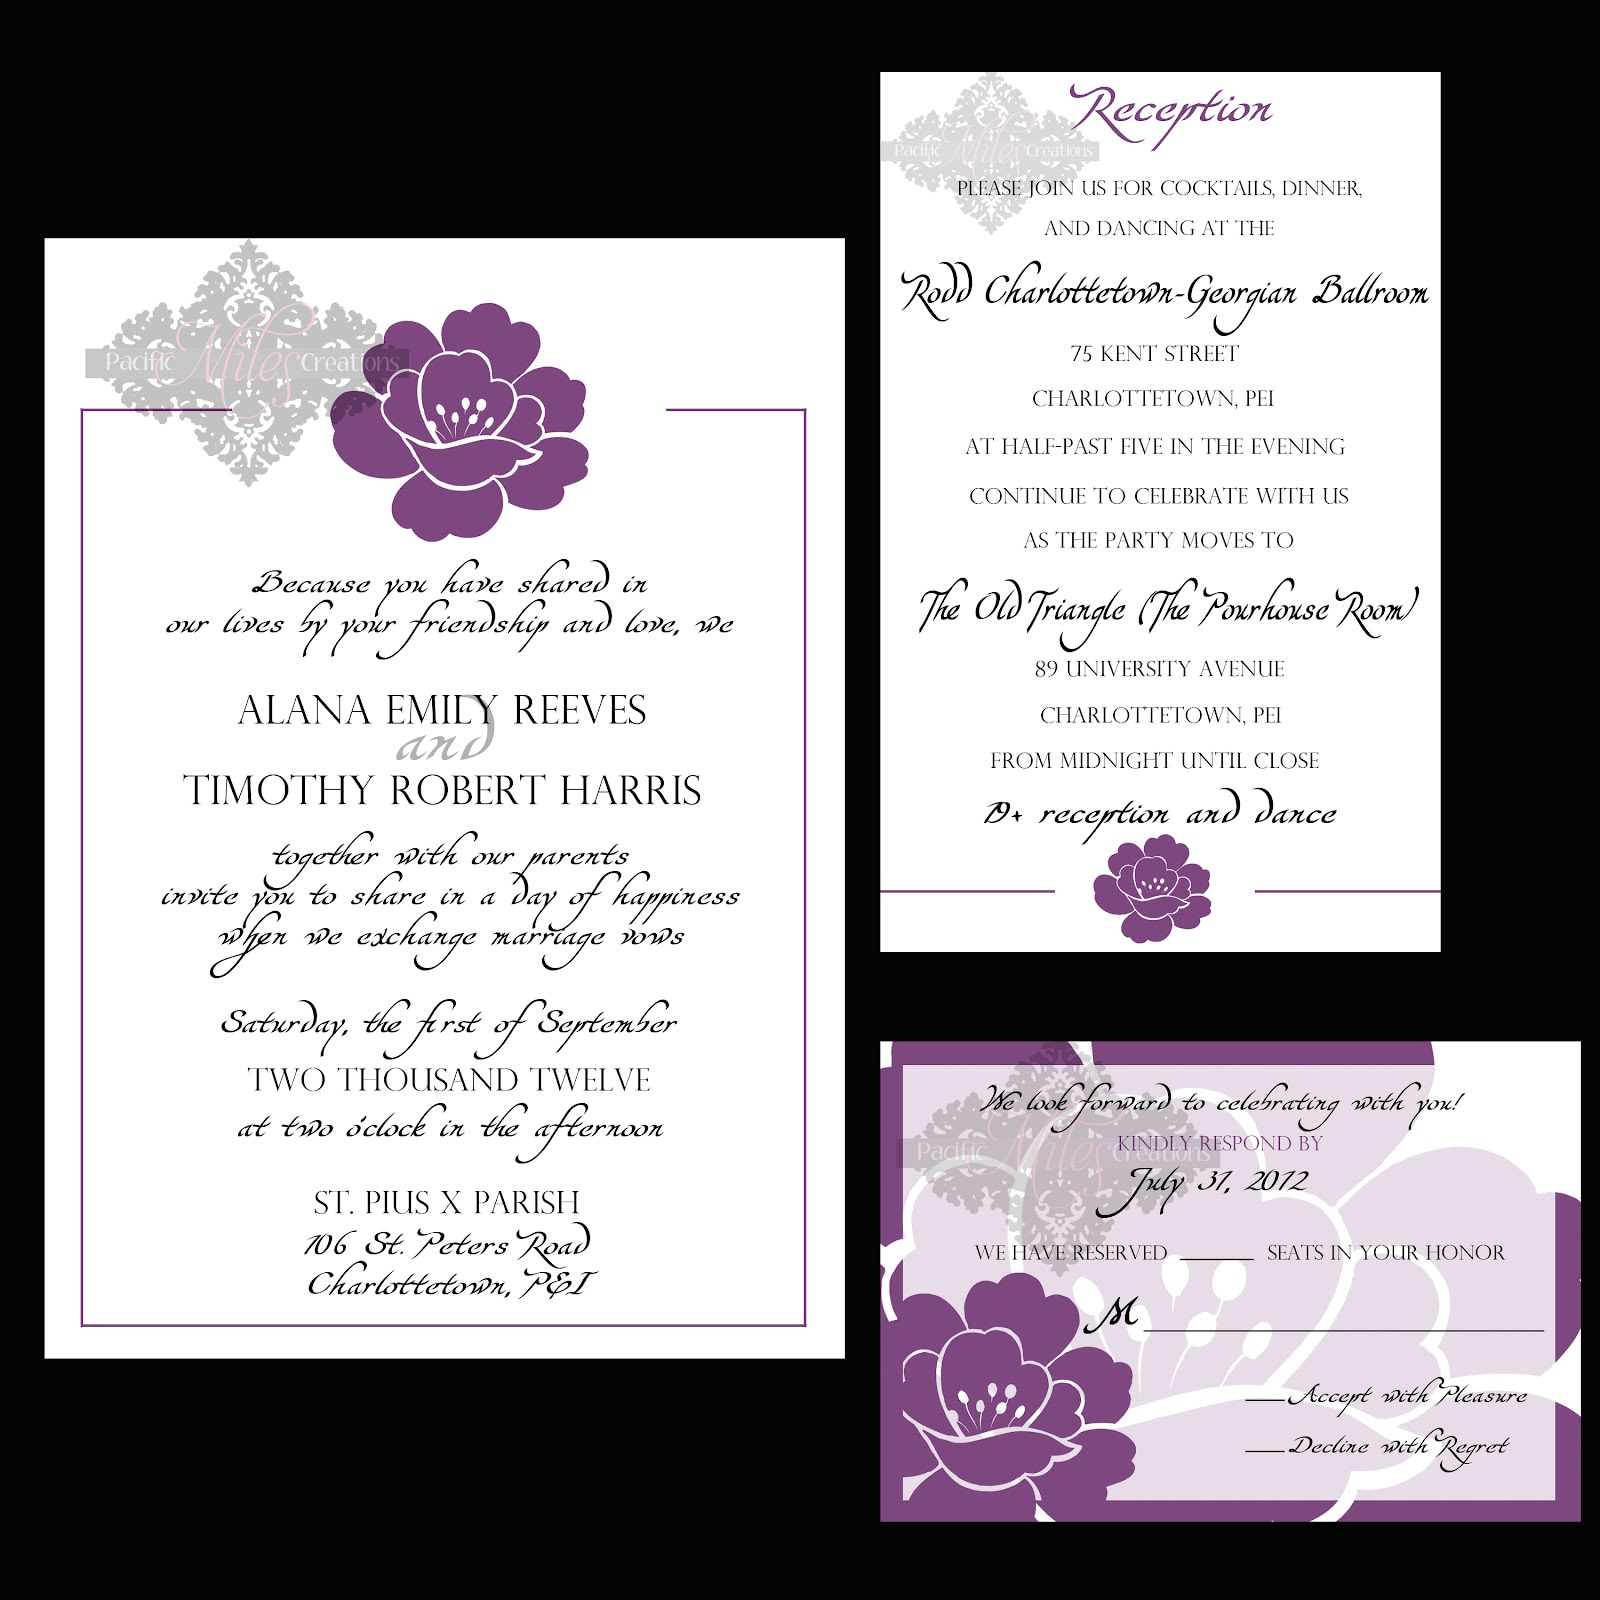 Wedding Pictures Wedding Photos: Photo Wedding Invitations